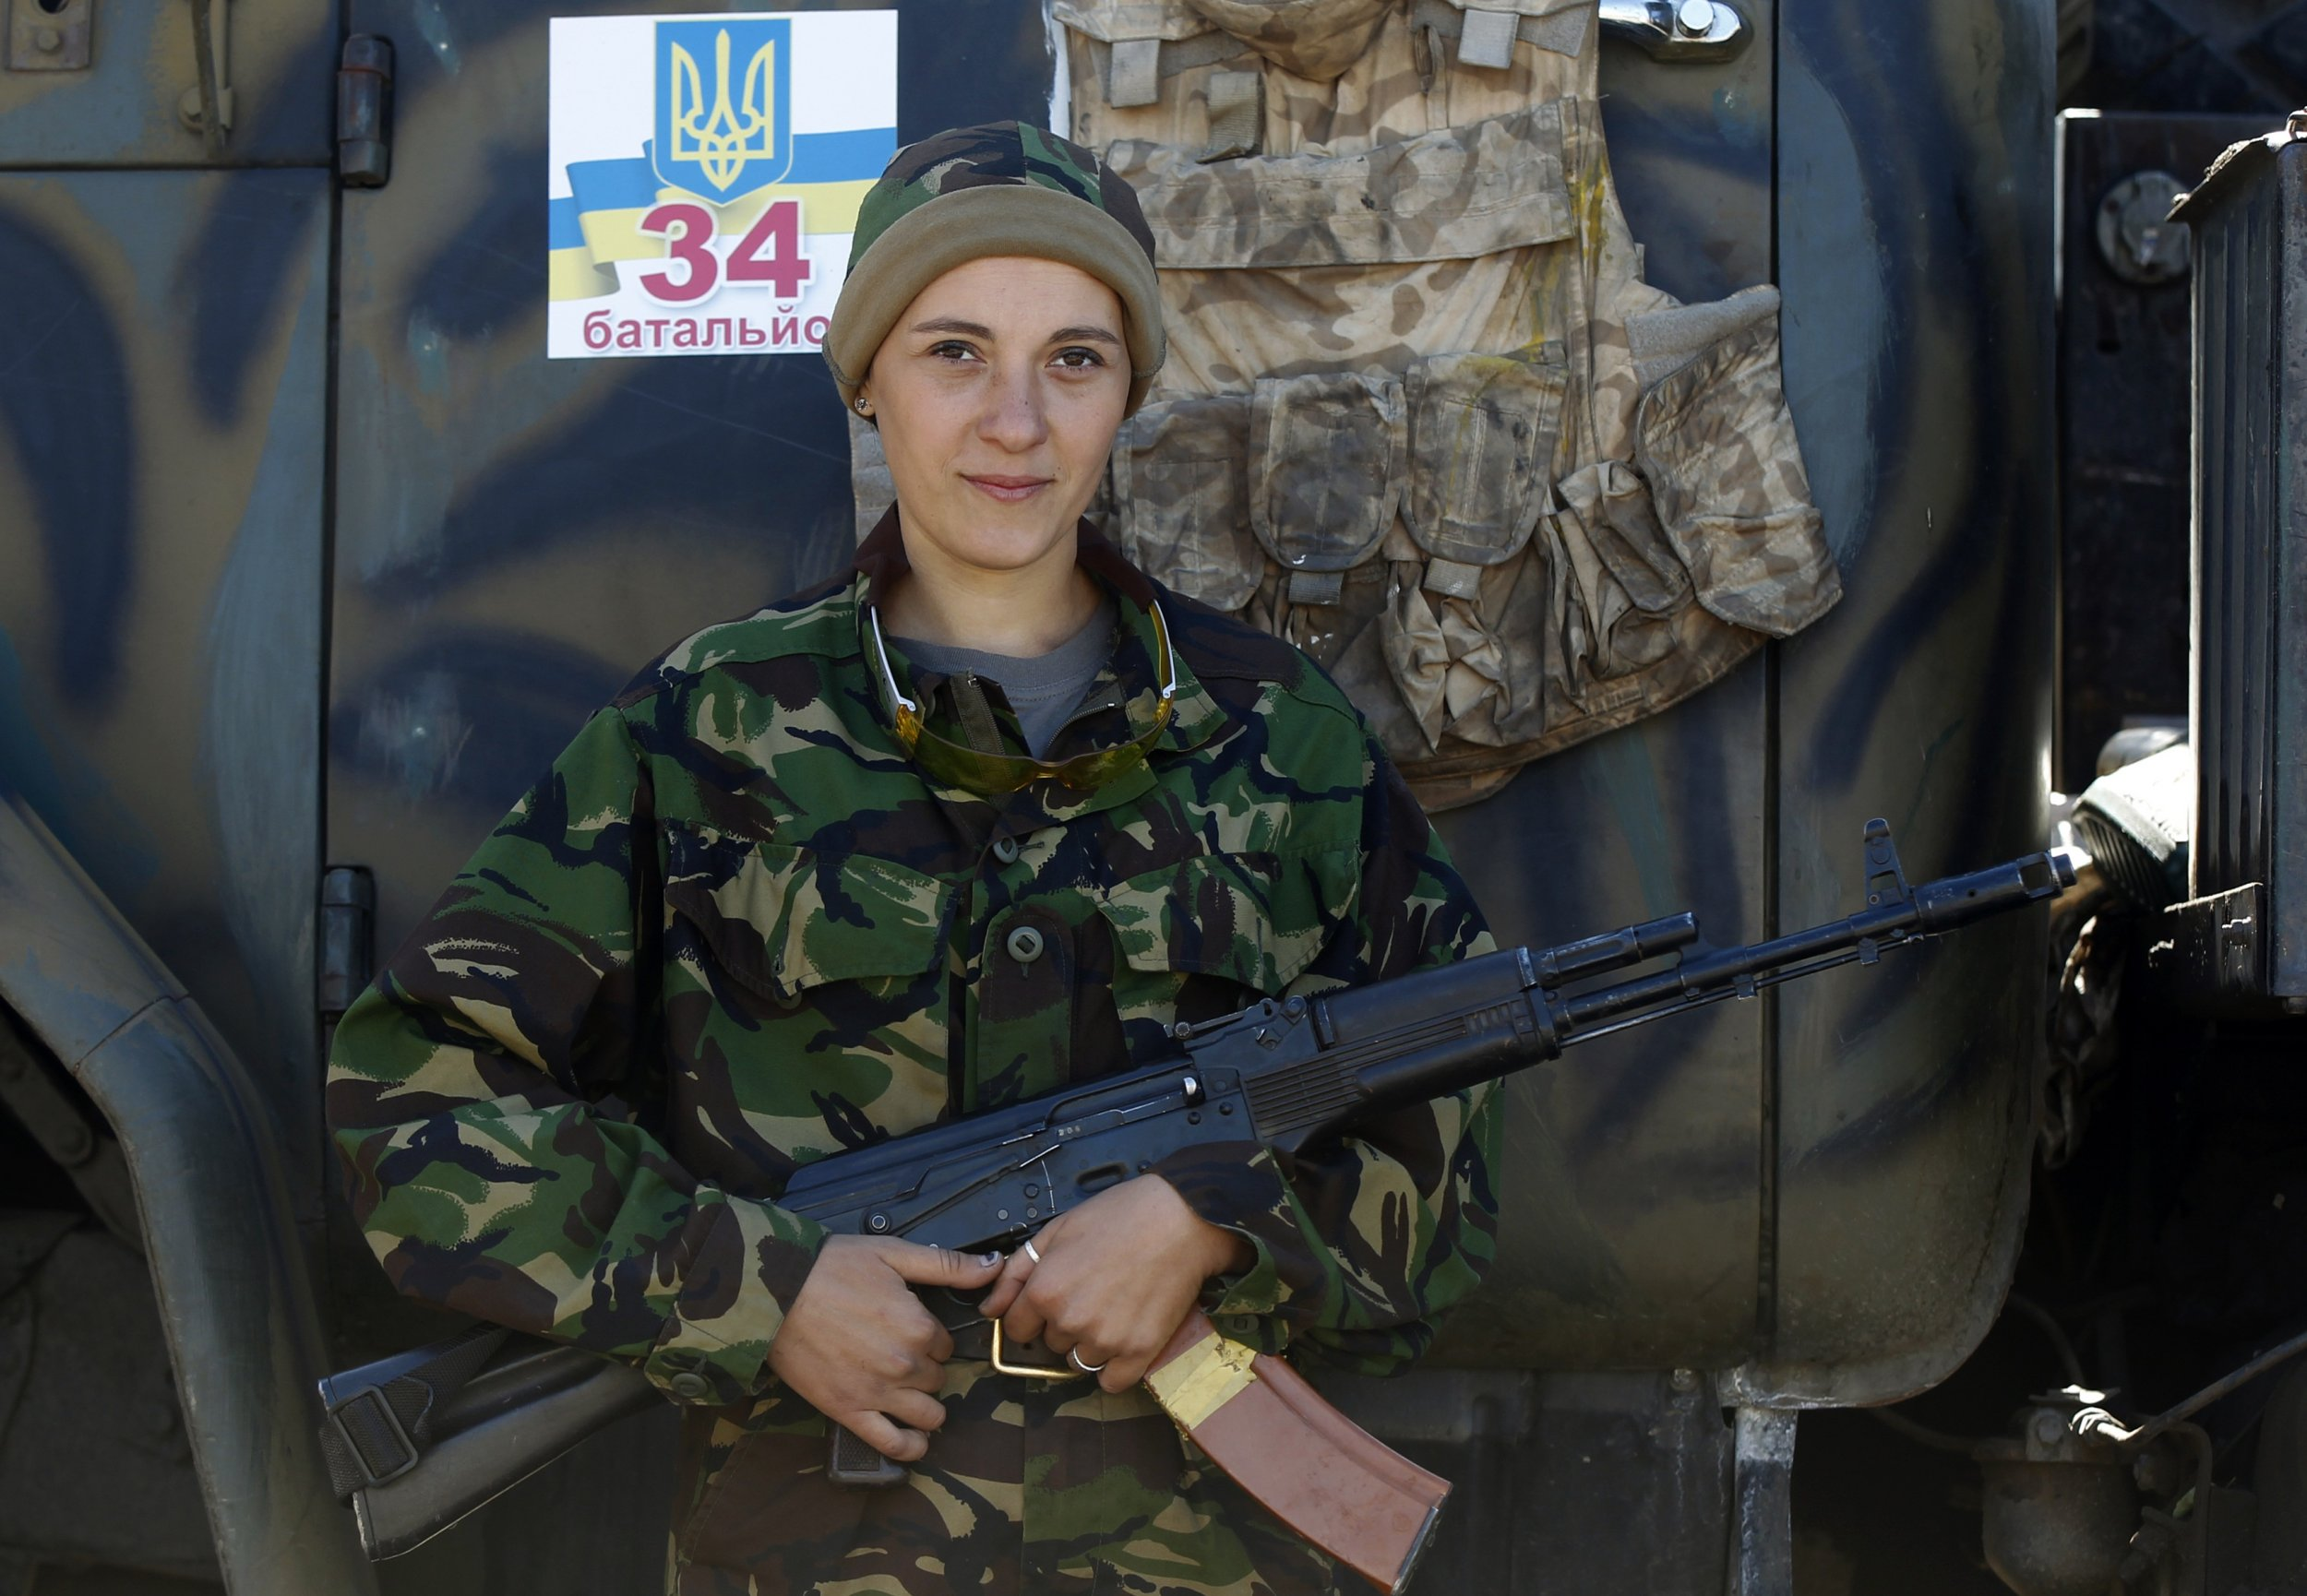 SUPER AWESOME Russian Military Women in Uniform